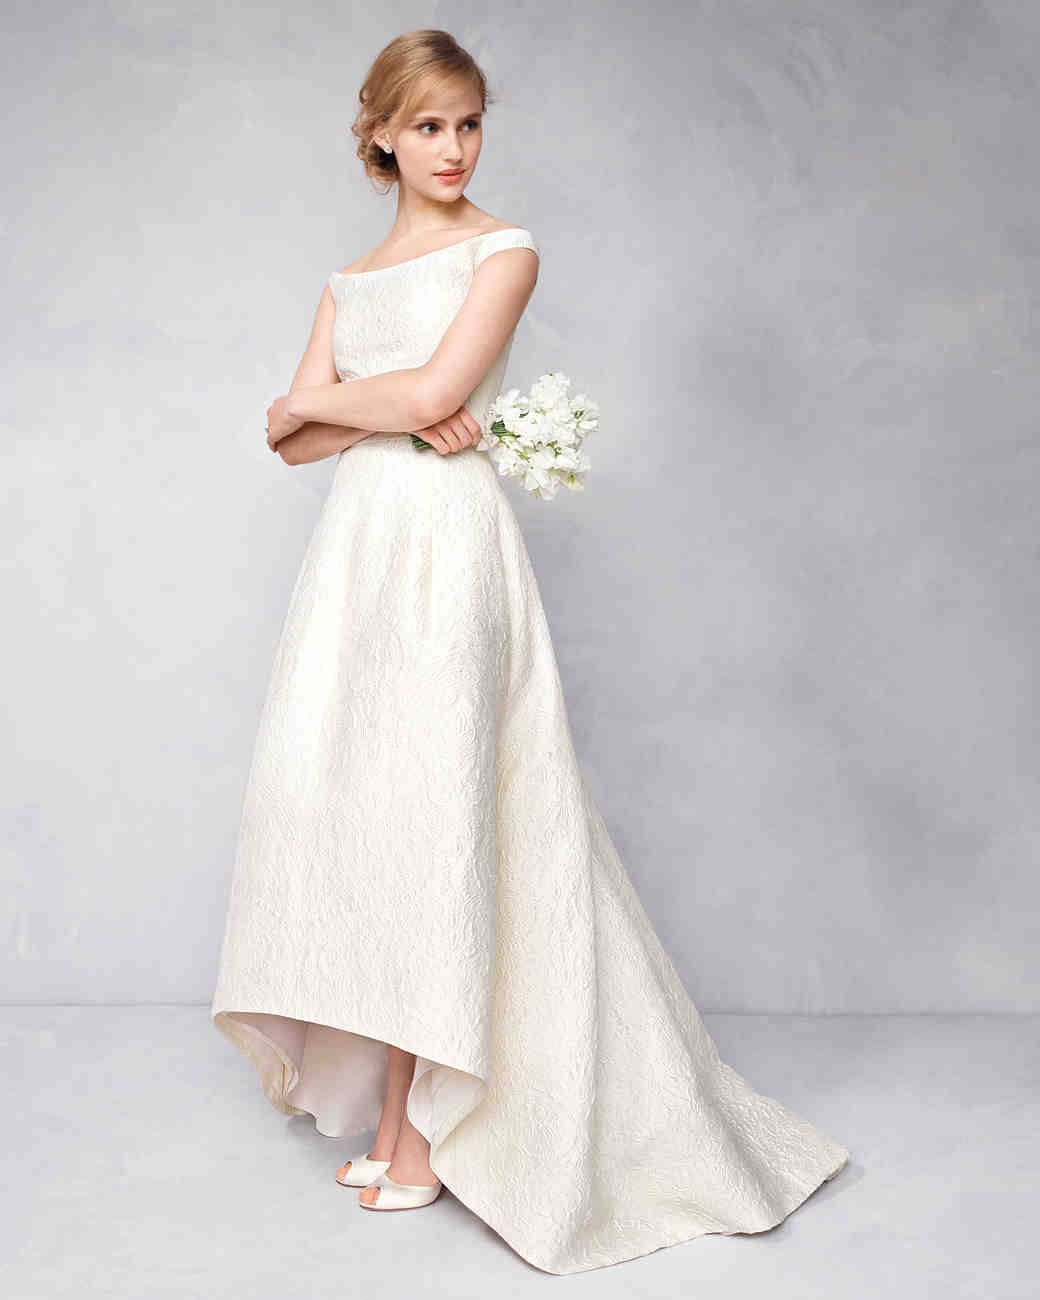 Wedding Dress Styles, Two Ways | Martha Stewart Weddings